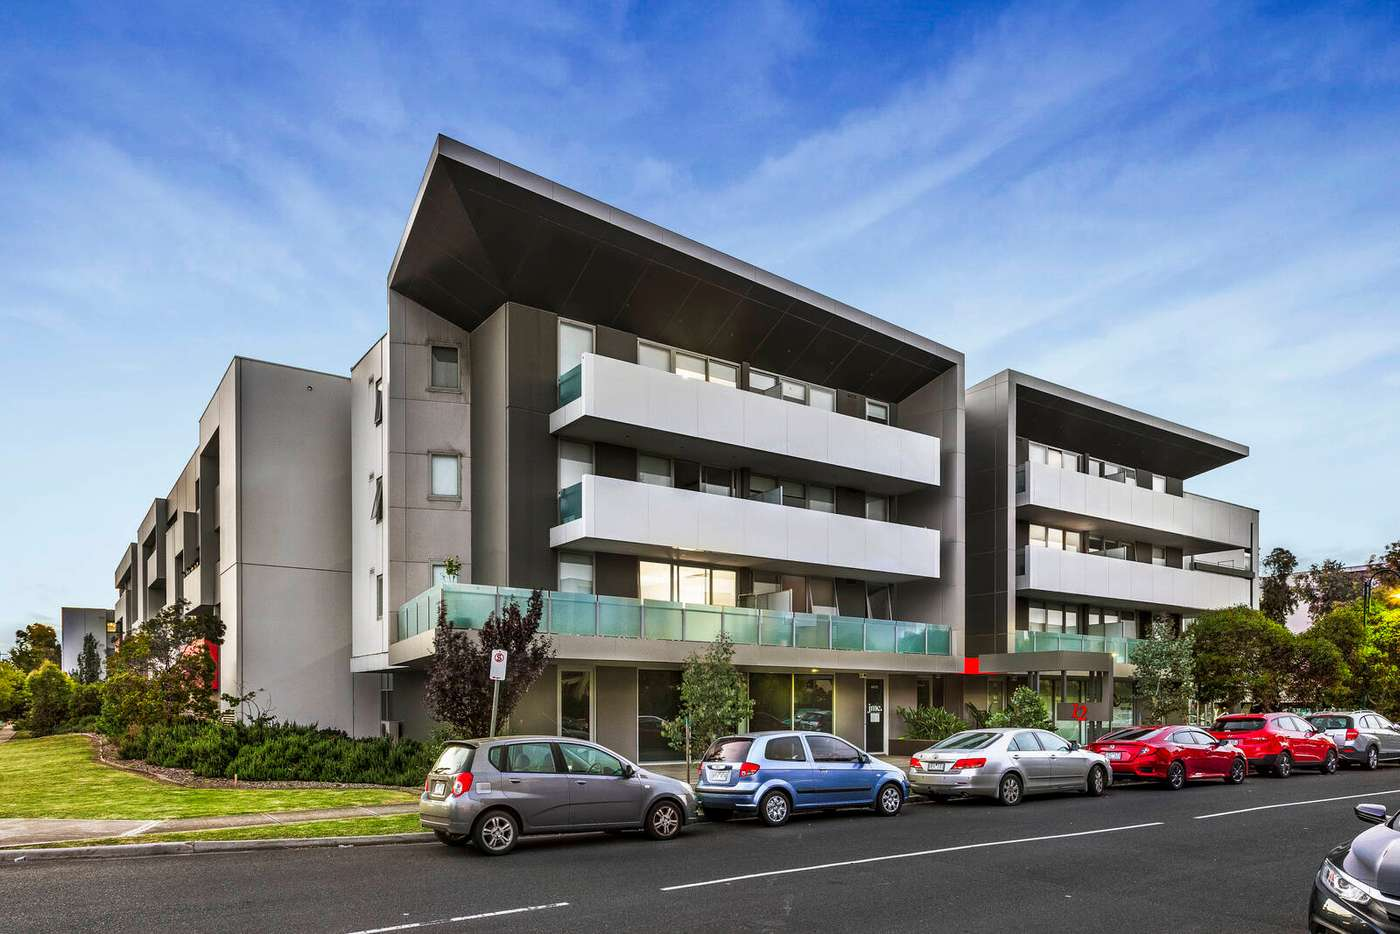 Main view of Homely unit listing, 2/12 Crefden Street, Maidstone VIC 3012